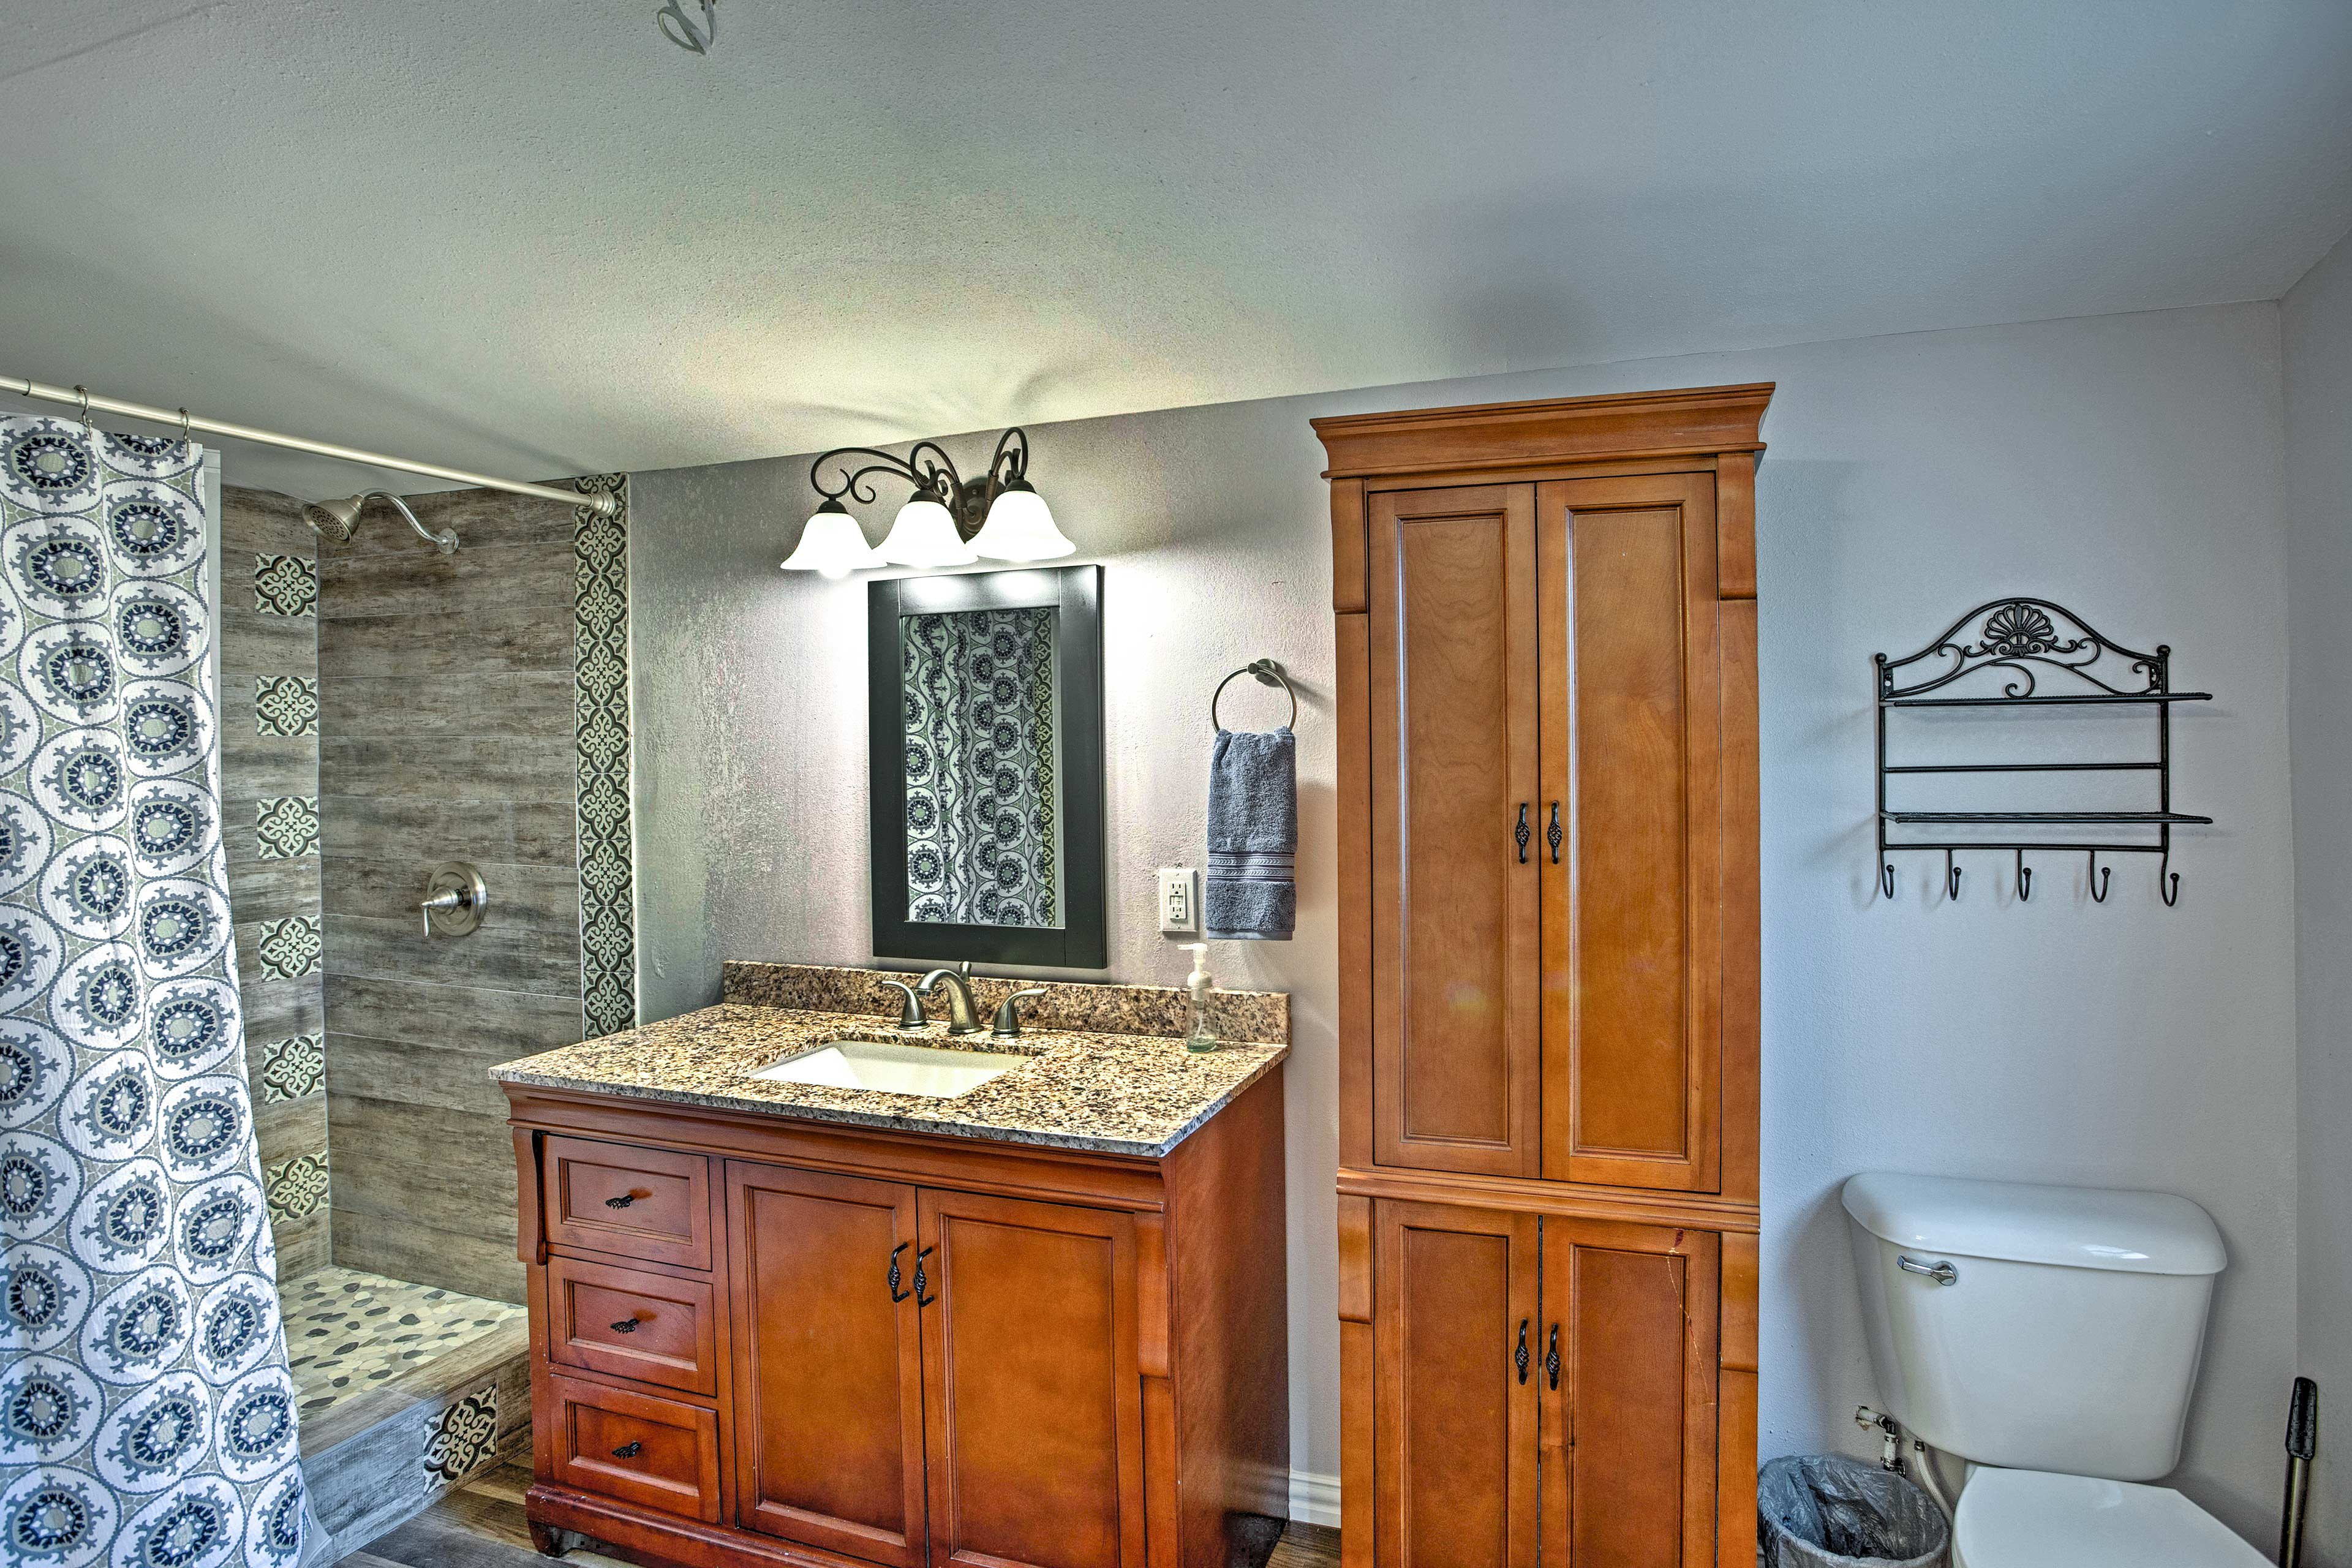 The bungalow has a full-sized bathroom with an elegant stone walk-in shower.